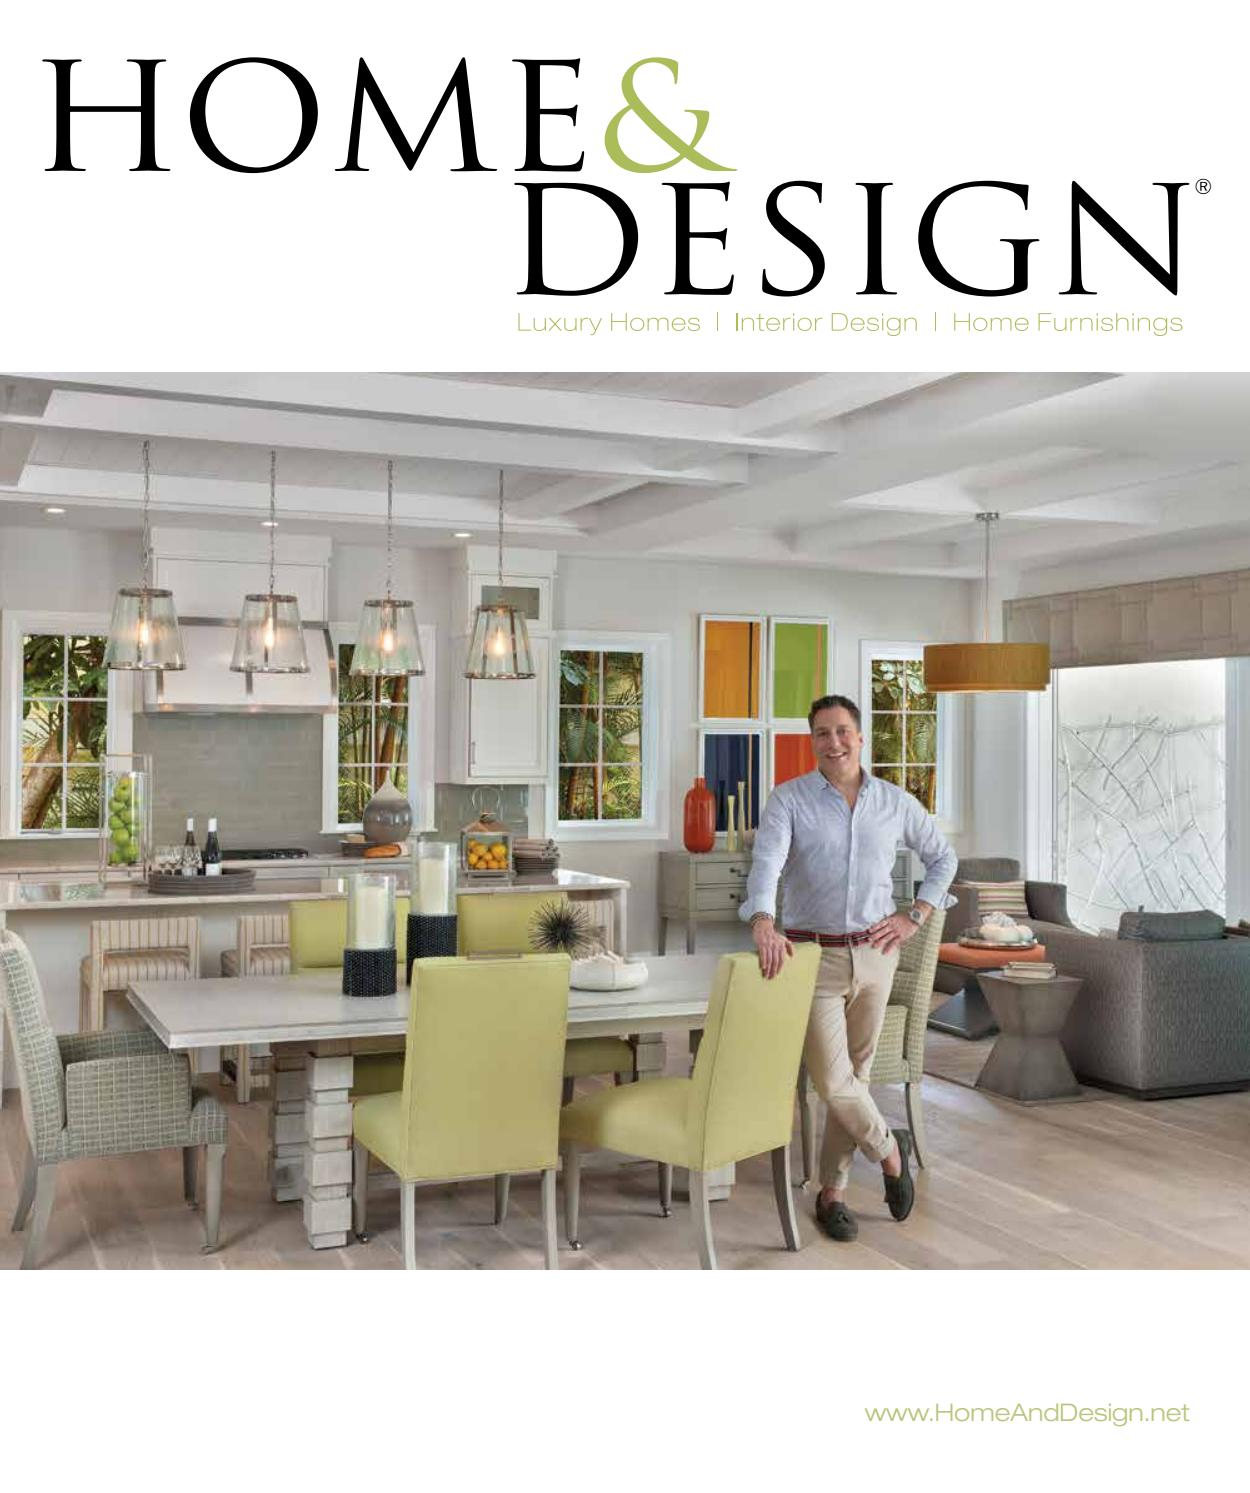 ccpy interior design 34 stunningly scandinavian interior designs home design Home u0026 Design Magazine 2016 Southwest Florida Edition by Jennifer Evans -  issuu